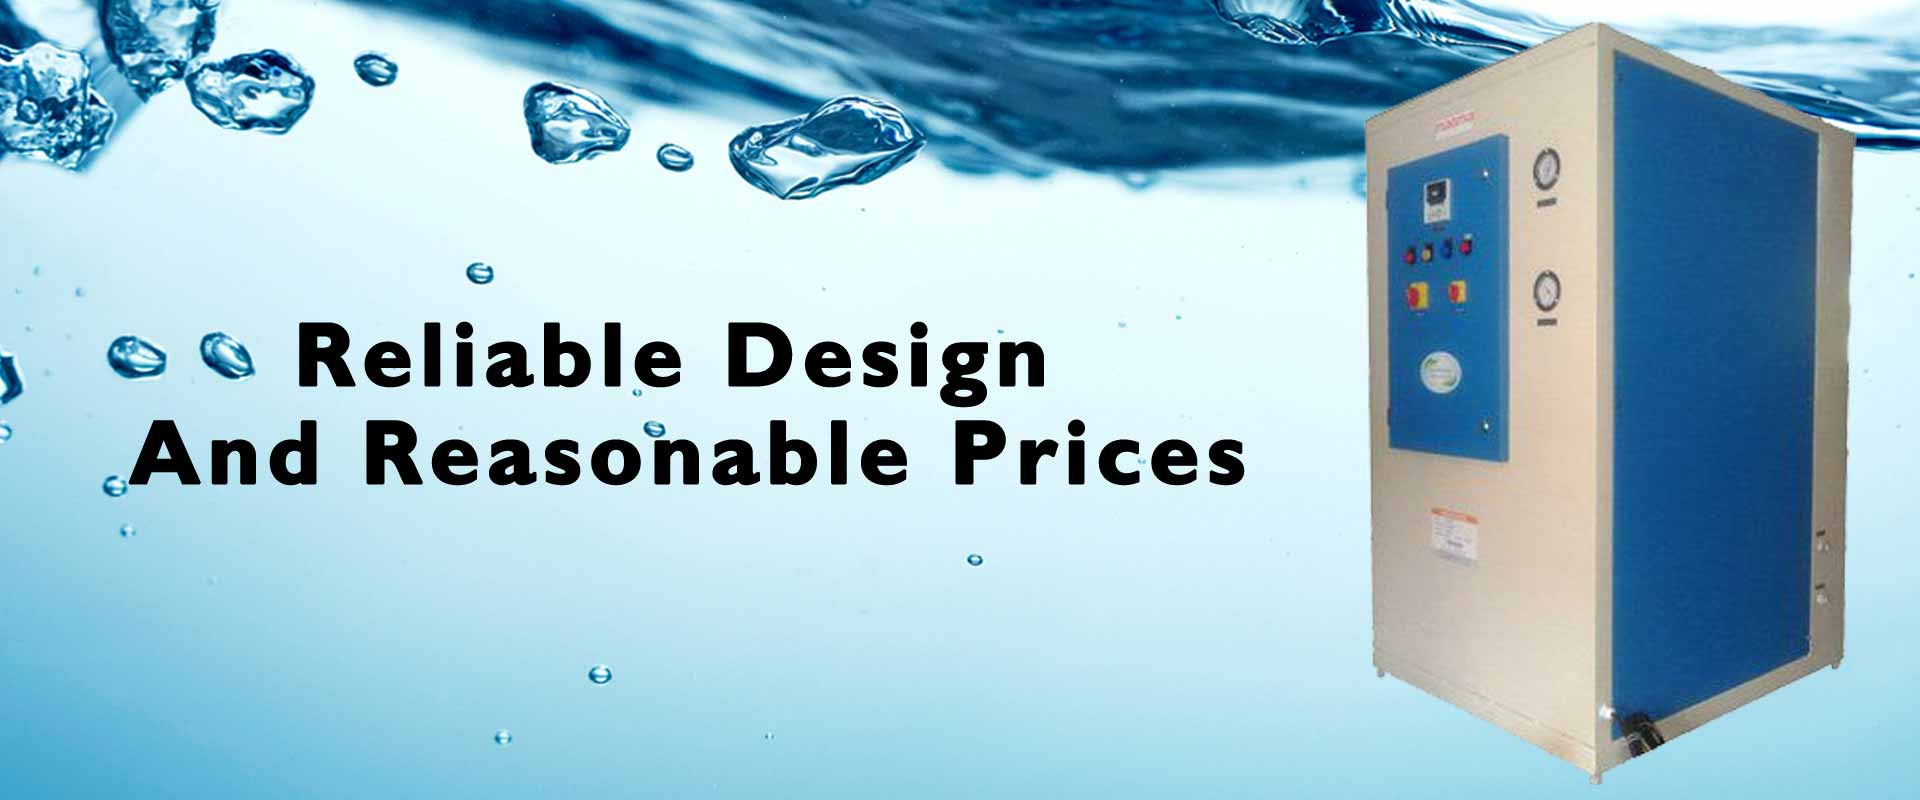 Reliable Design And Reasonable Prices